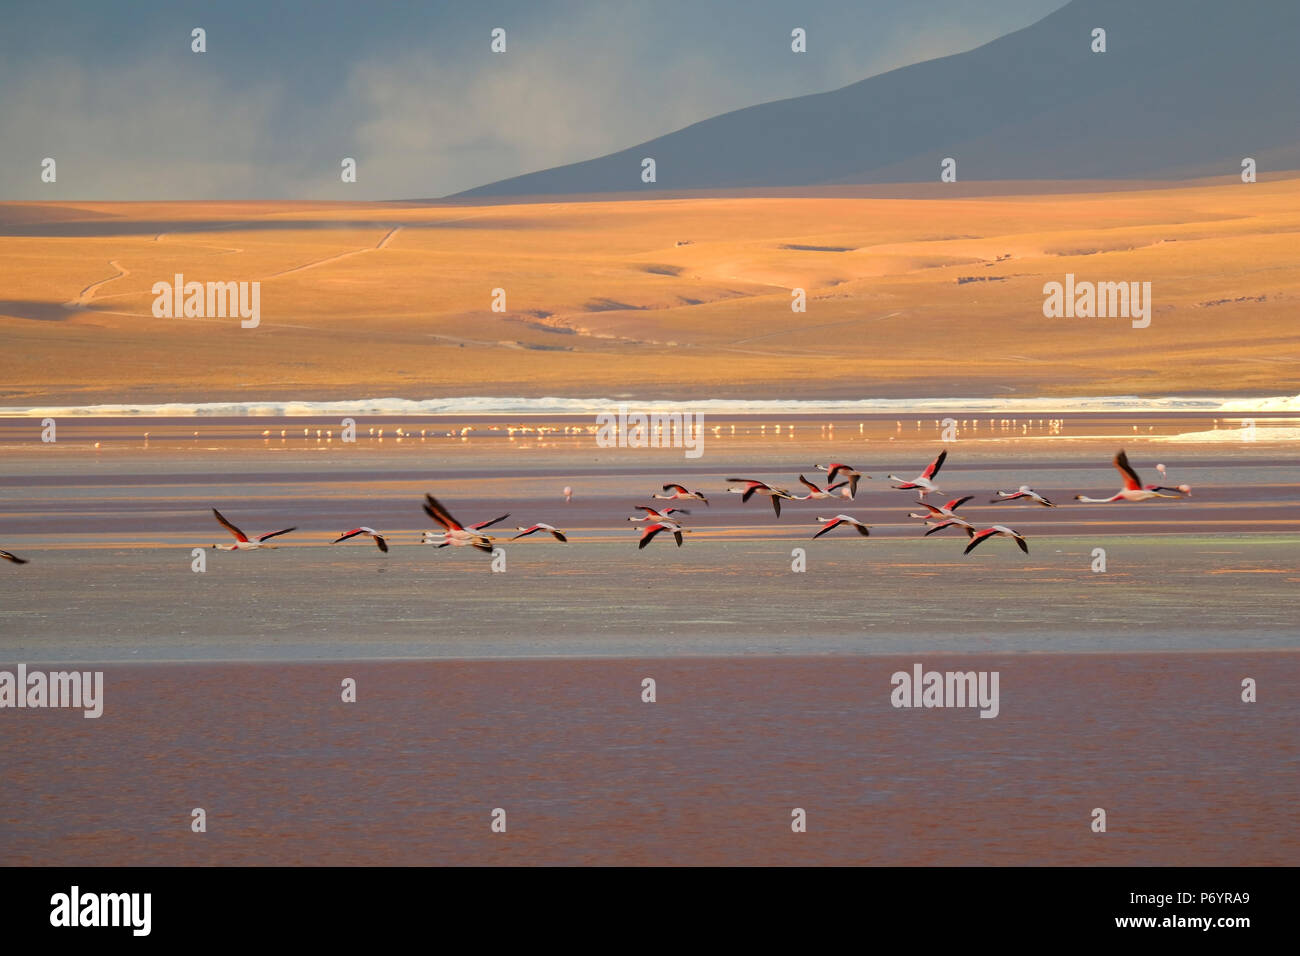 Group of flamingo flying on Laguna Colorada (Red Lagoon), the salt lake at altiplano plateau in Potosi, Bolivia - Stock Image